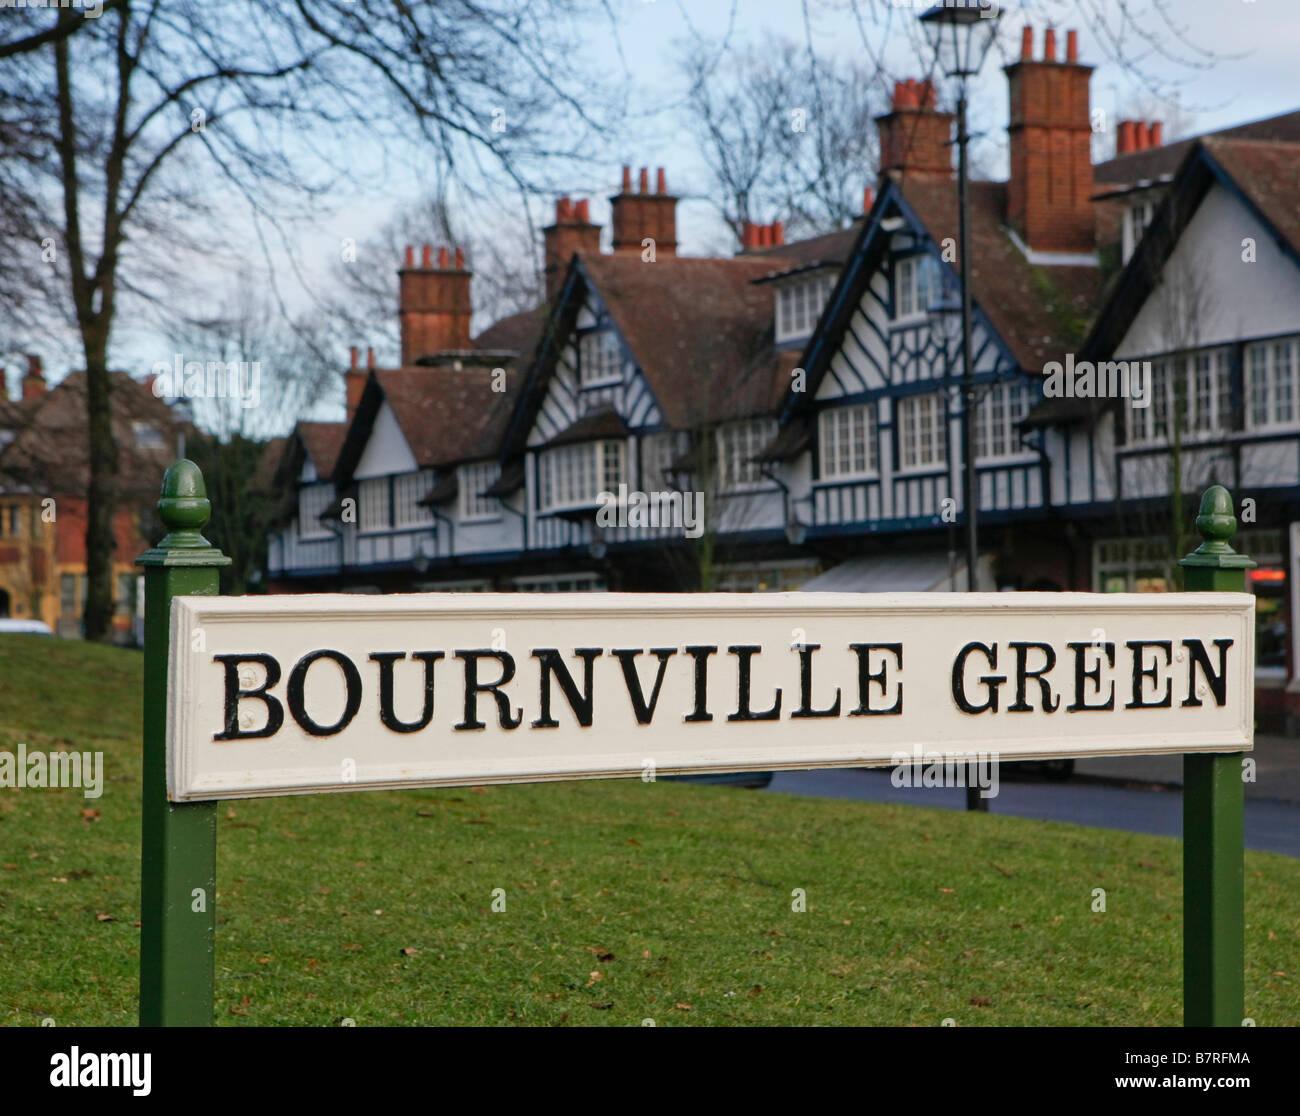 Bournville Green Birmingham West Midlands England Showing the timber framed shops - Stock Image